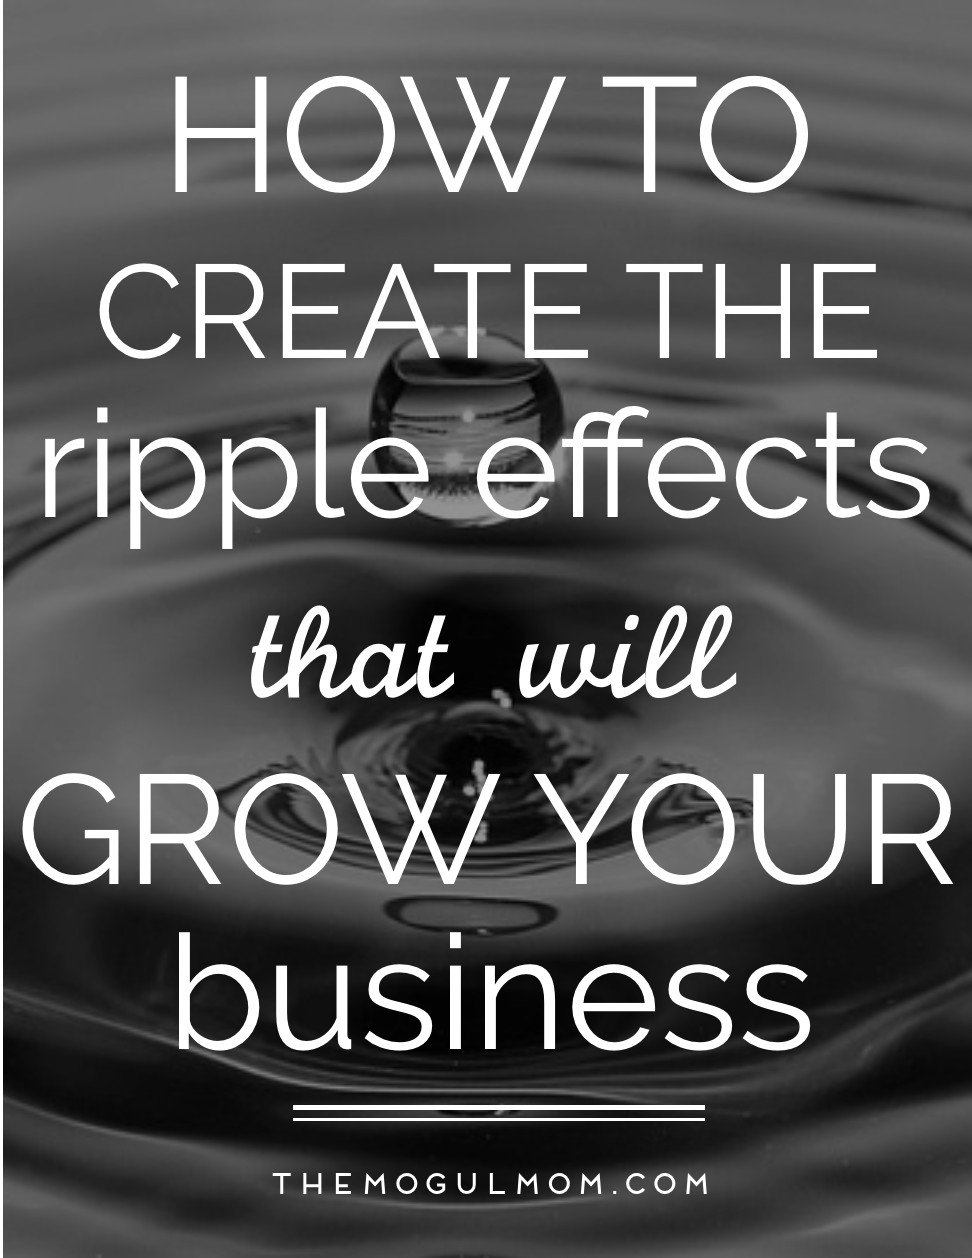 How to Create the Ripple Effects that Will Increase Business Growth